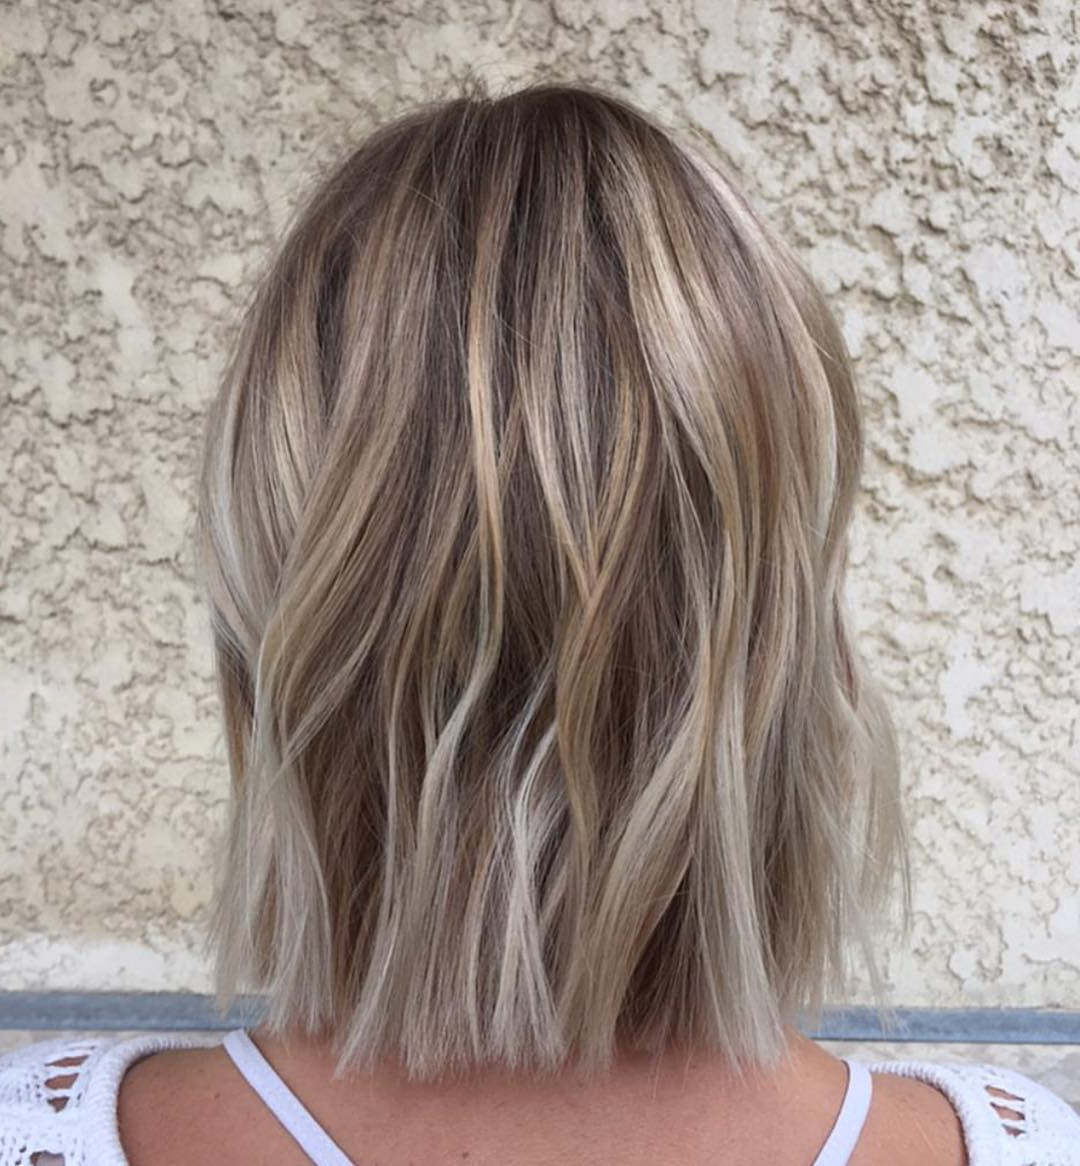 10 Balayage Ombre Hair Styles For Shoulder Length Hair, Women Pertaining To One Length Balayage Bob Hairstyles With Bangs (View 2 of 20)